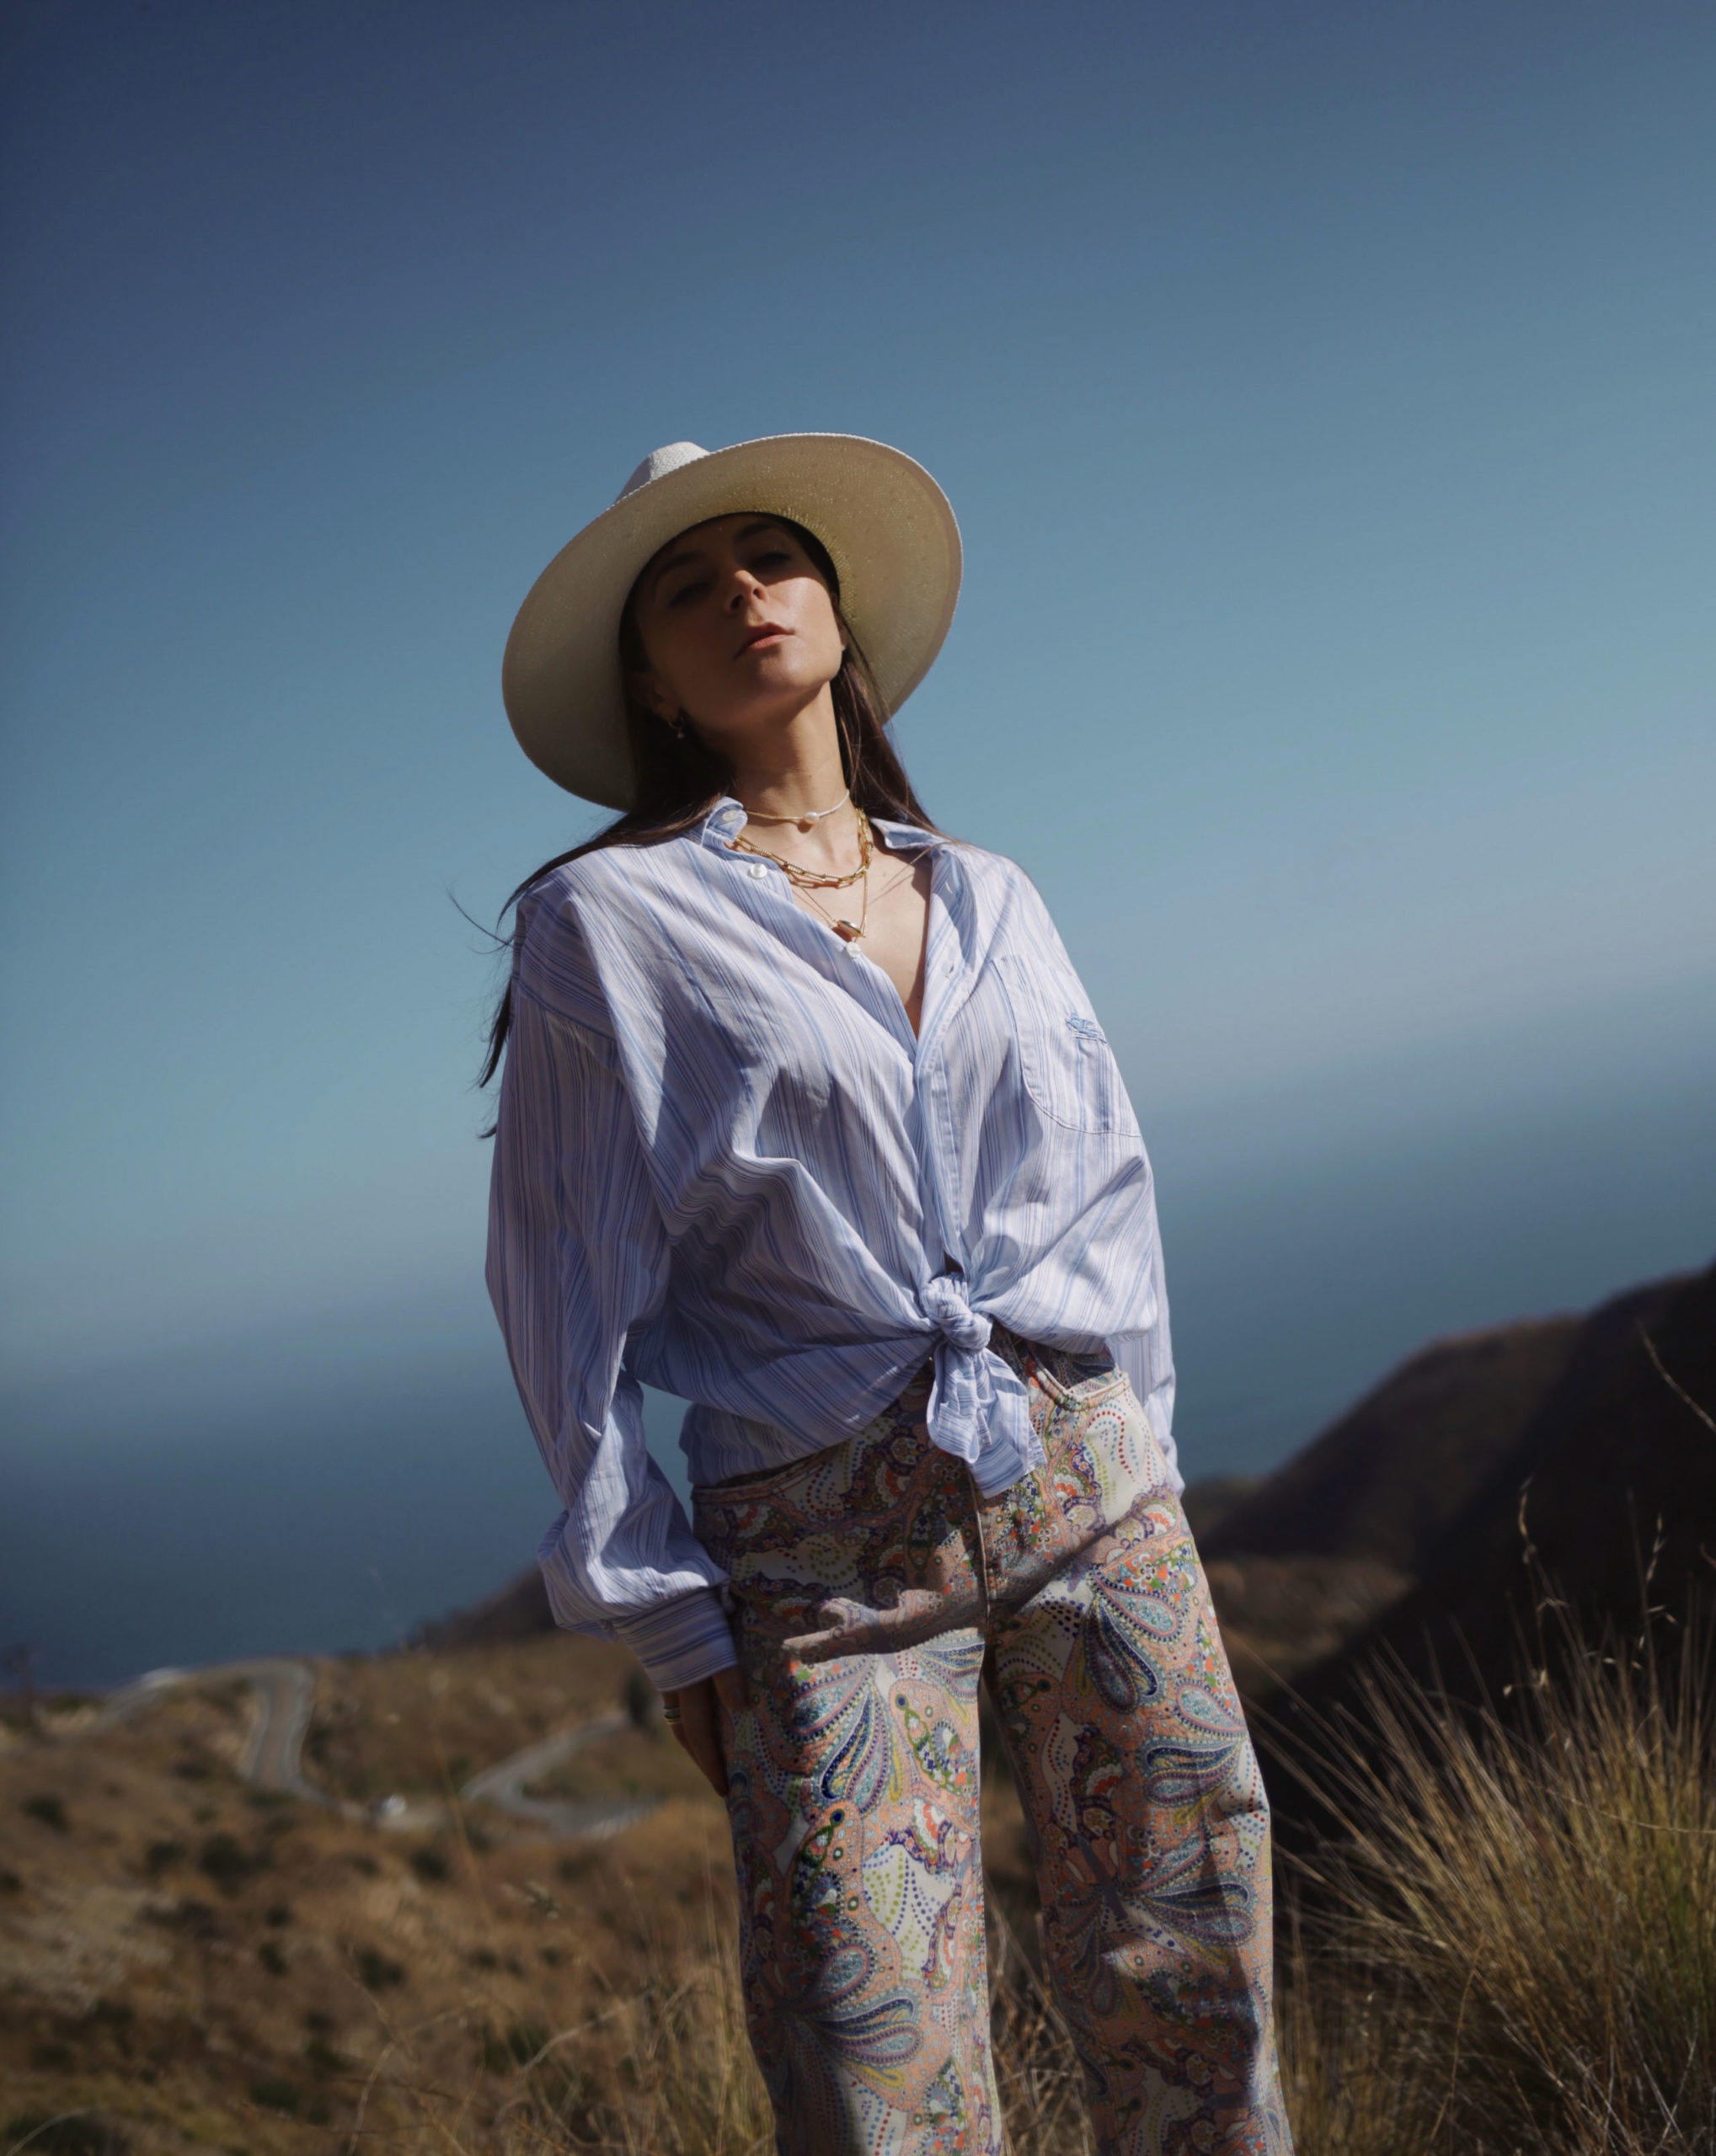 Summer style in Malibu etro fashion editorial 2020 - etro 70s denim boho chic outfit style summer style edgy chic cashmere denim pants